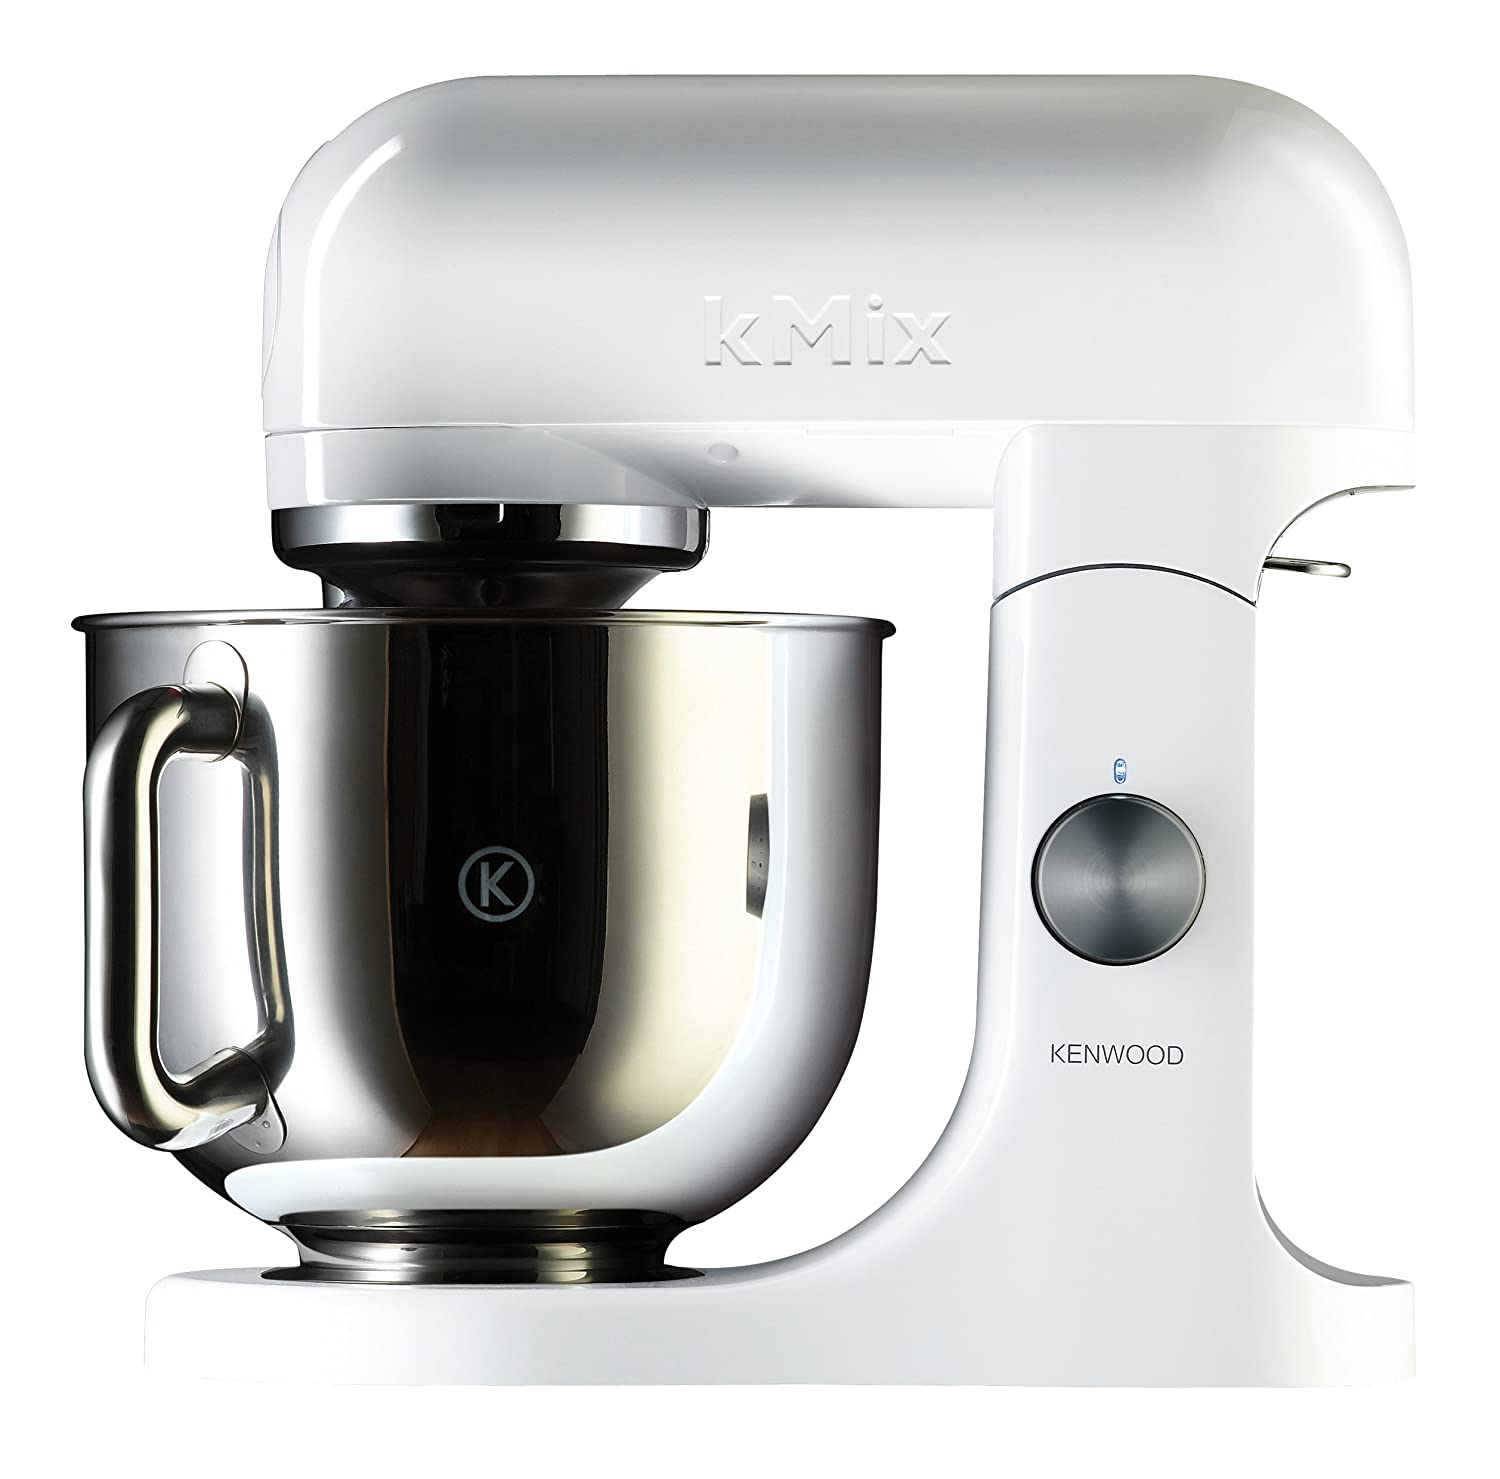 Kenwood kMix KMX50 Batidora de pie - Blanco (Amazon.co.uk Exclusive): Amazon.es: Hogar